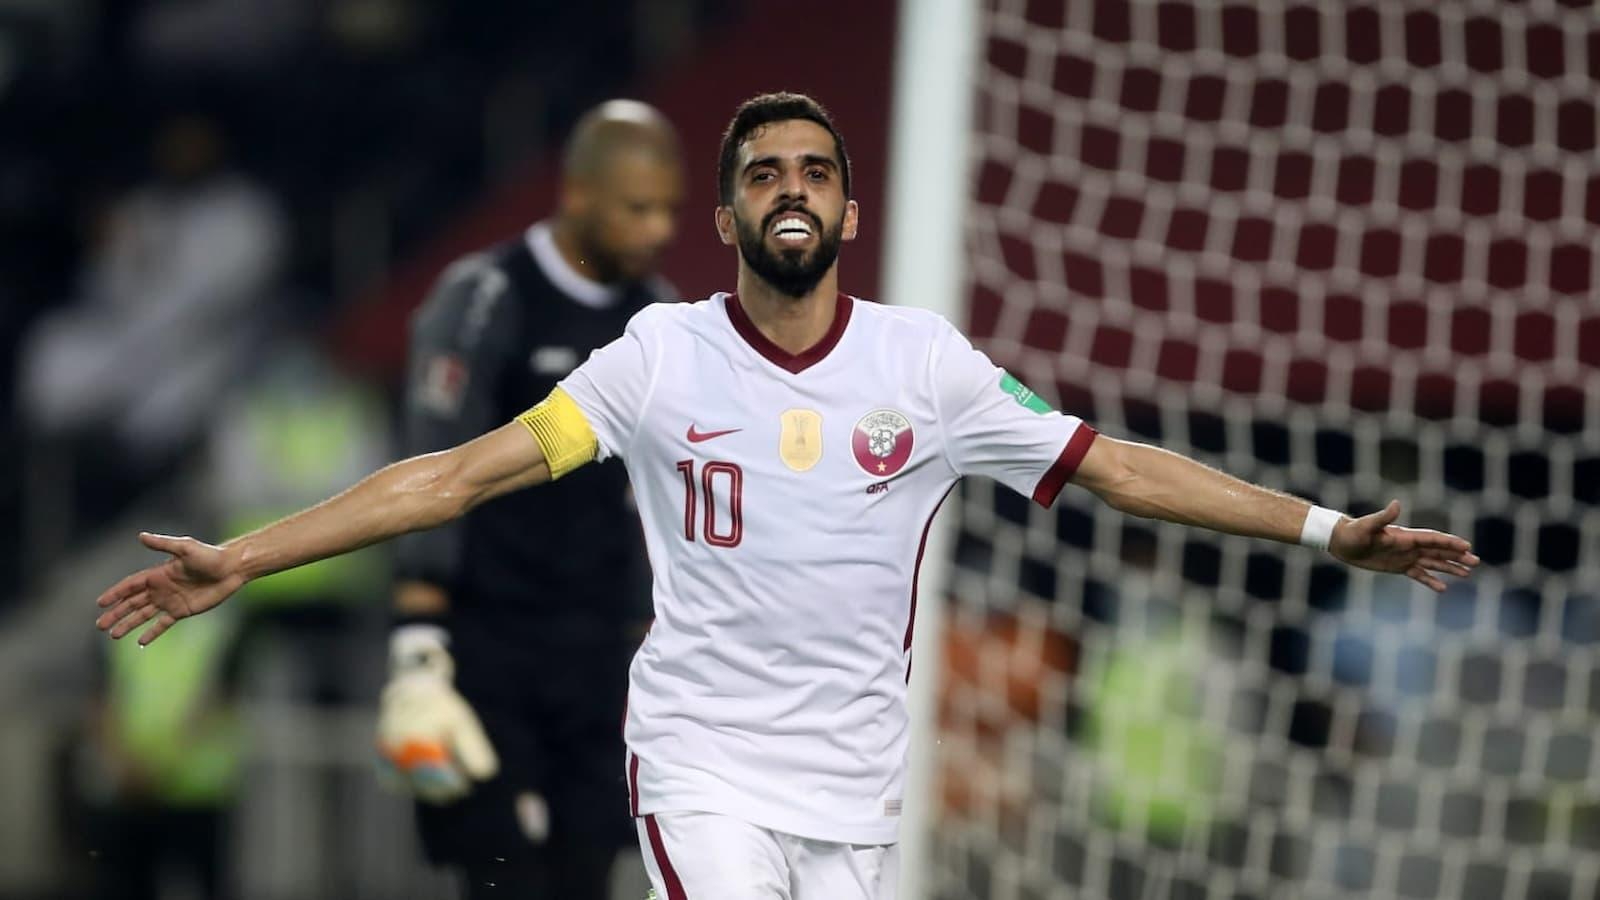 Qatar seals 2023 Asian Cup qualification with 1-0 defeat of Oman